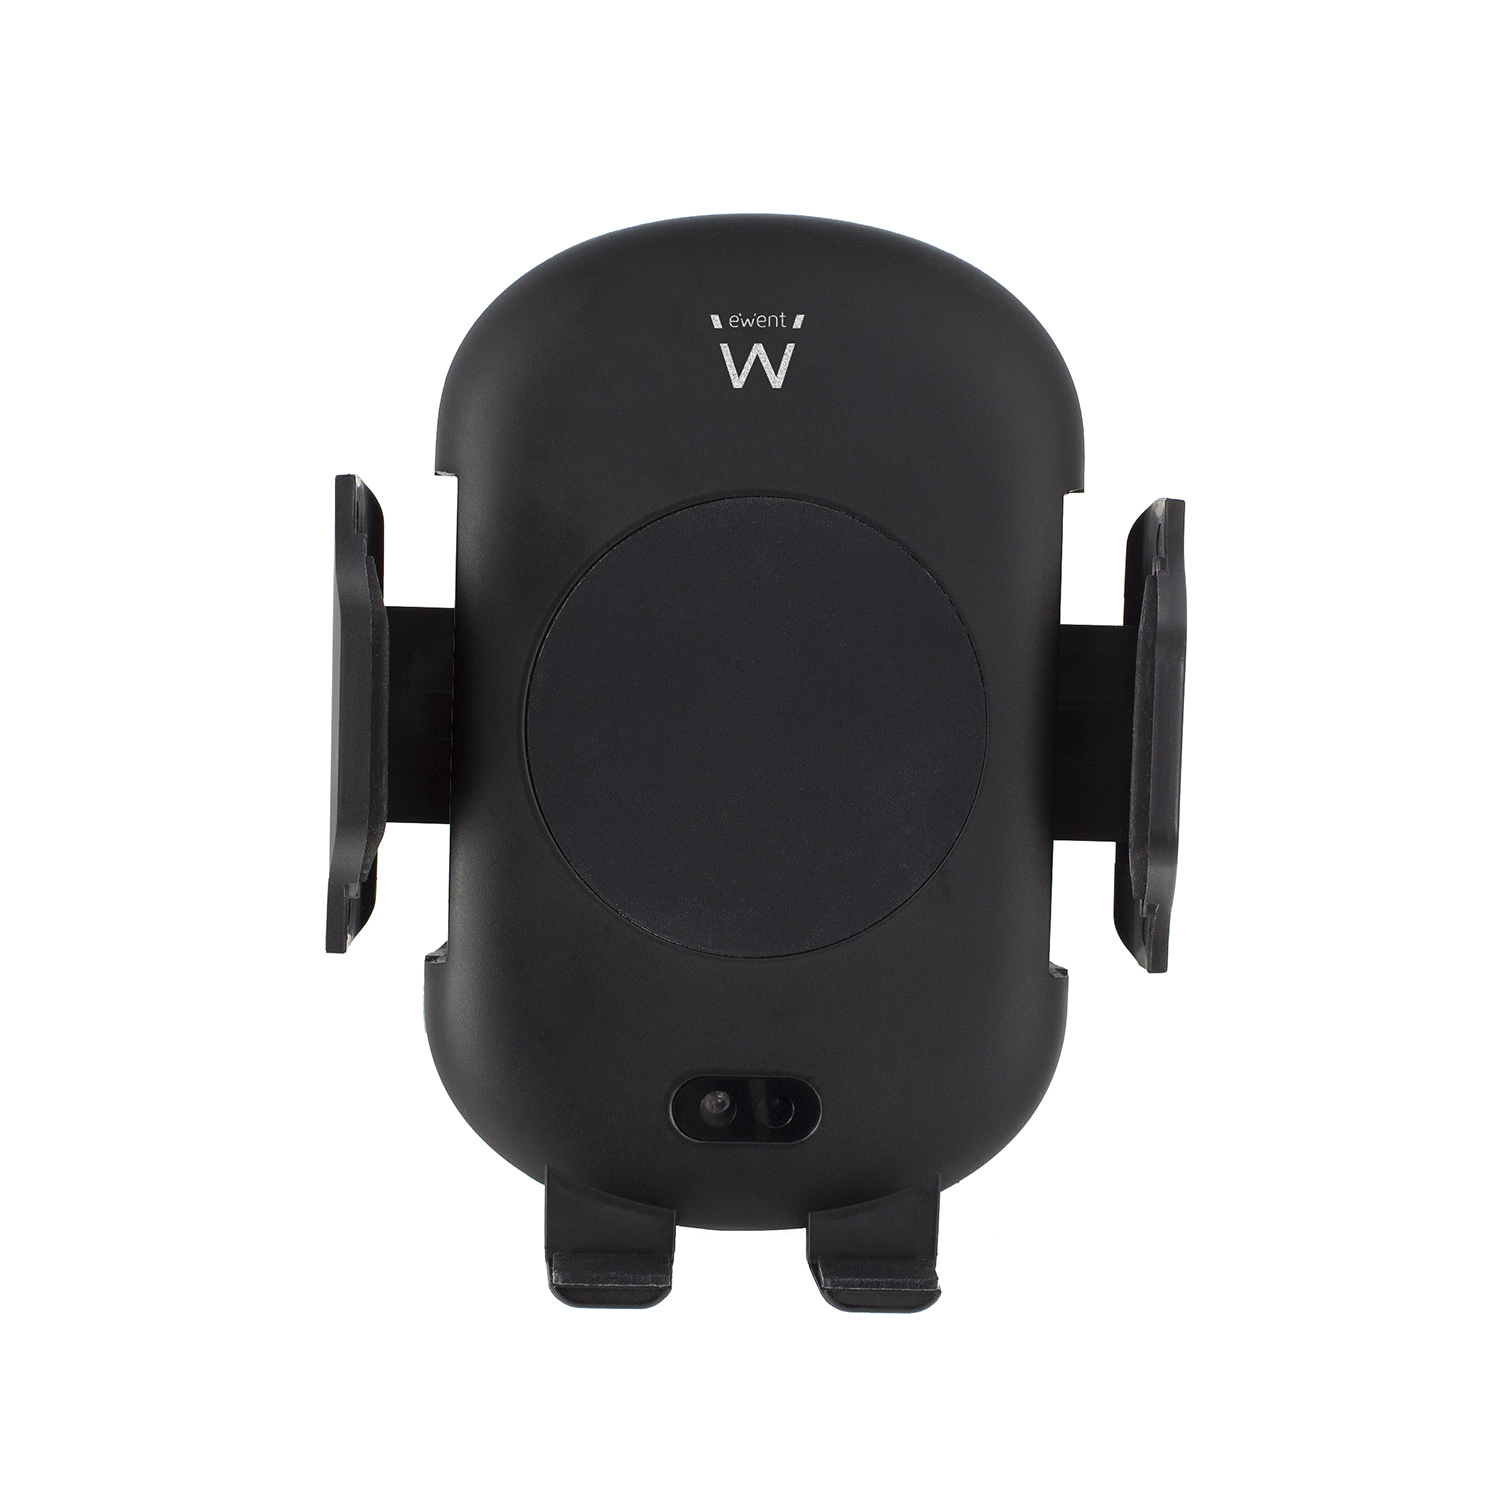 Automatic car mount wireless charger